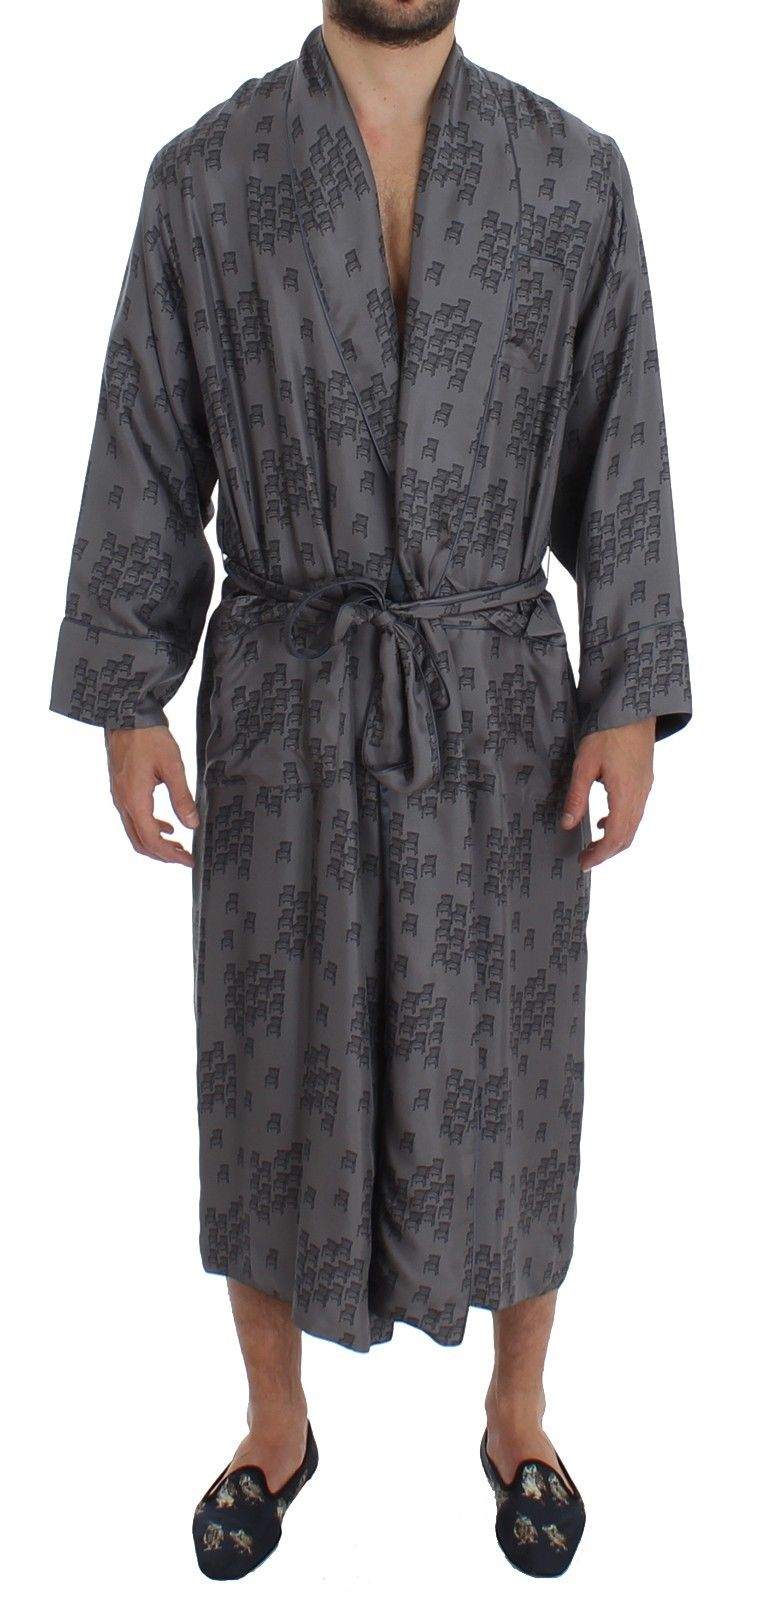 Dolce & Gabbana - Gray Blue Chair Print SILK Robe Coat Nightgown